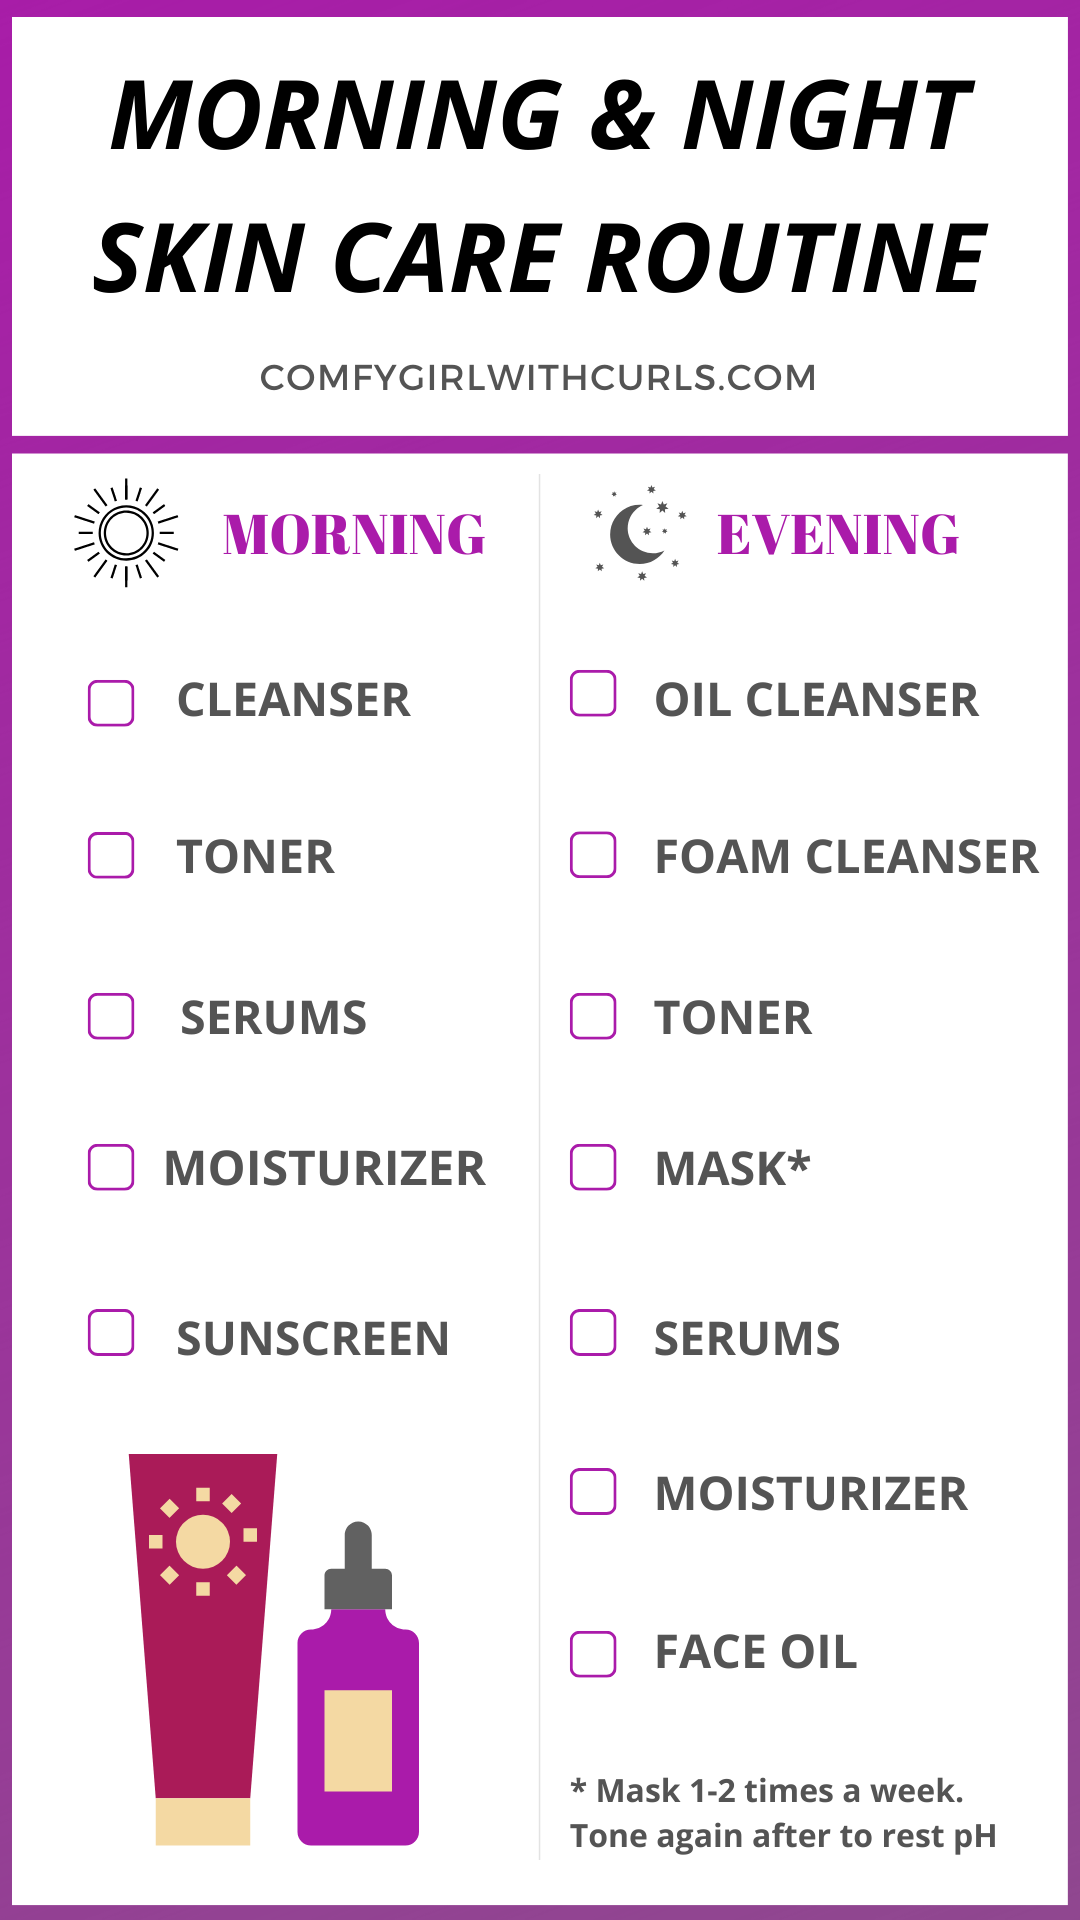 The Consistent Routine That Cleared My Skin Steps For Morning Night Night Skin Care Routine Skin Care Routine Steps Skin Routine